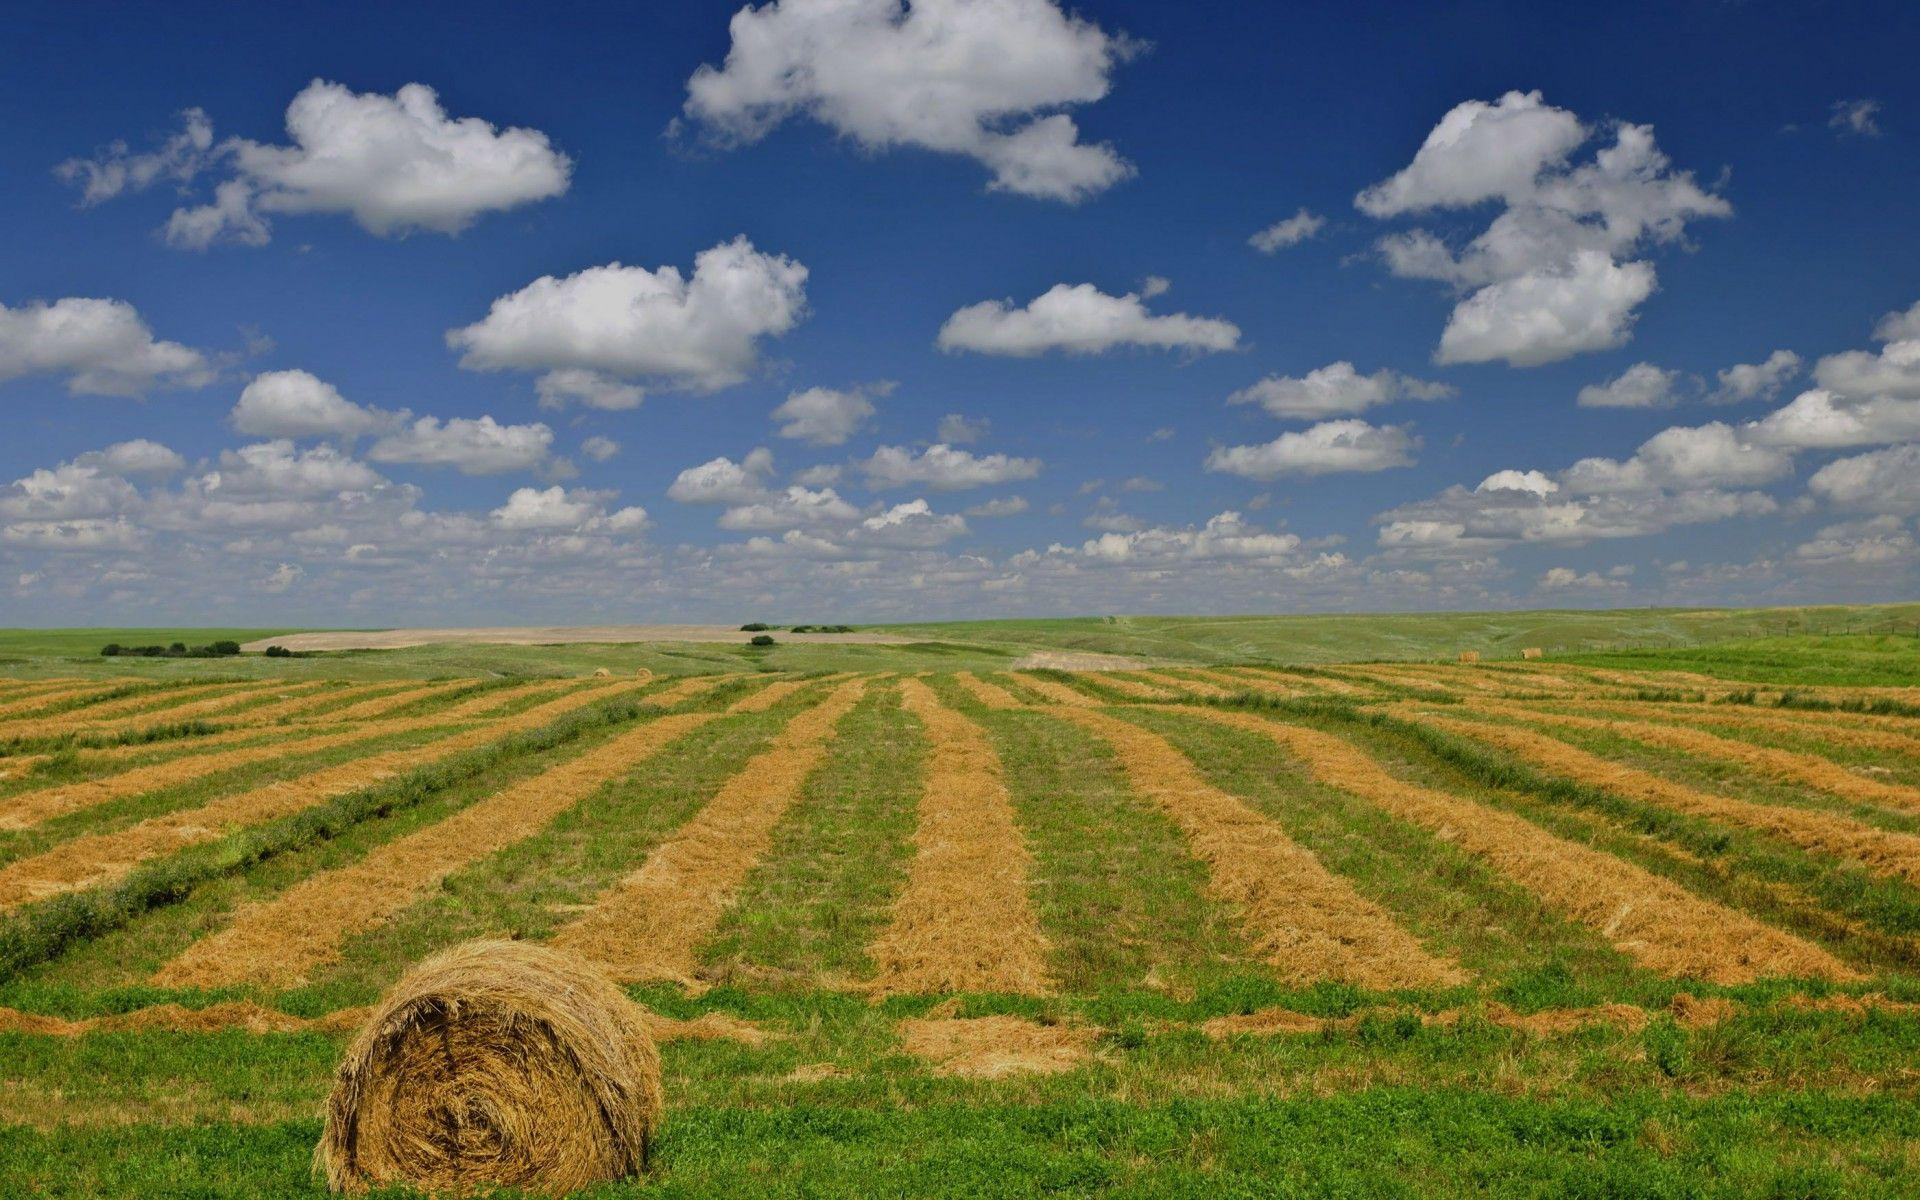 Prairie Wheat Farm Sky Canada wallpapers | Prairie Wheat Farm Sky ...